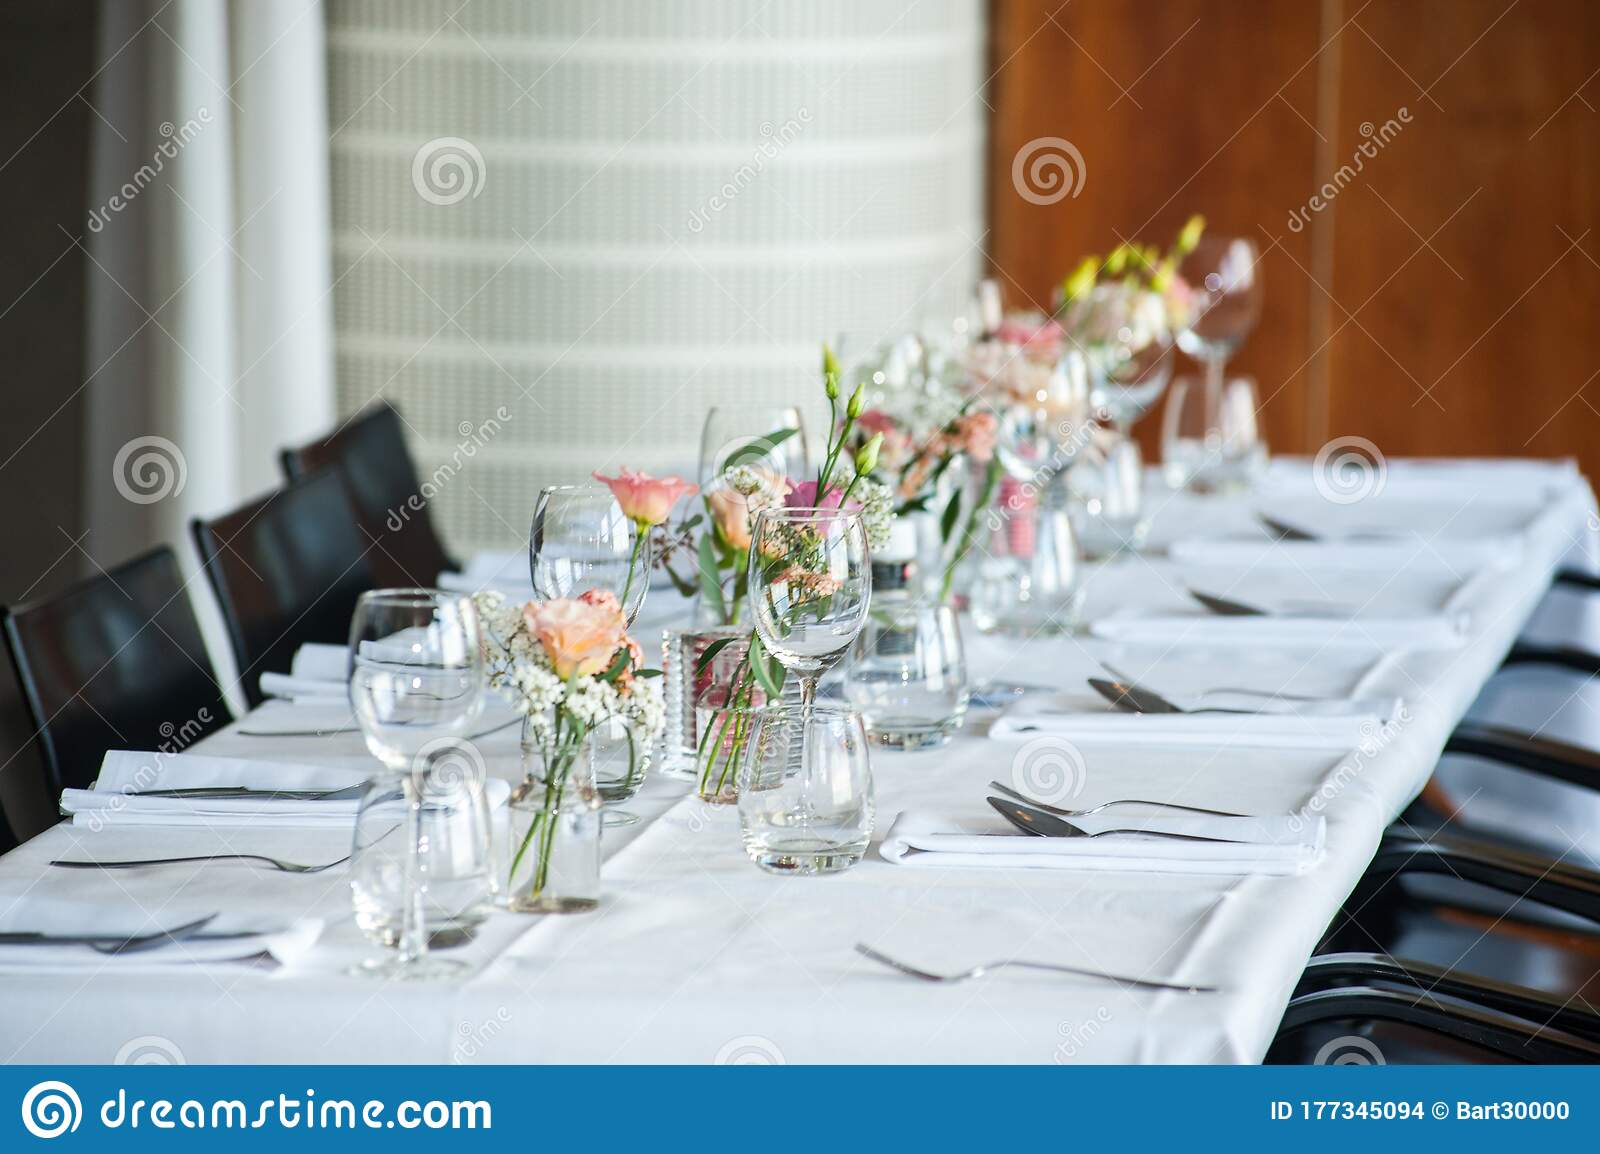 26 420 Diner Table Photos Free Royalty Free Stock Photos From Dreamstime